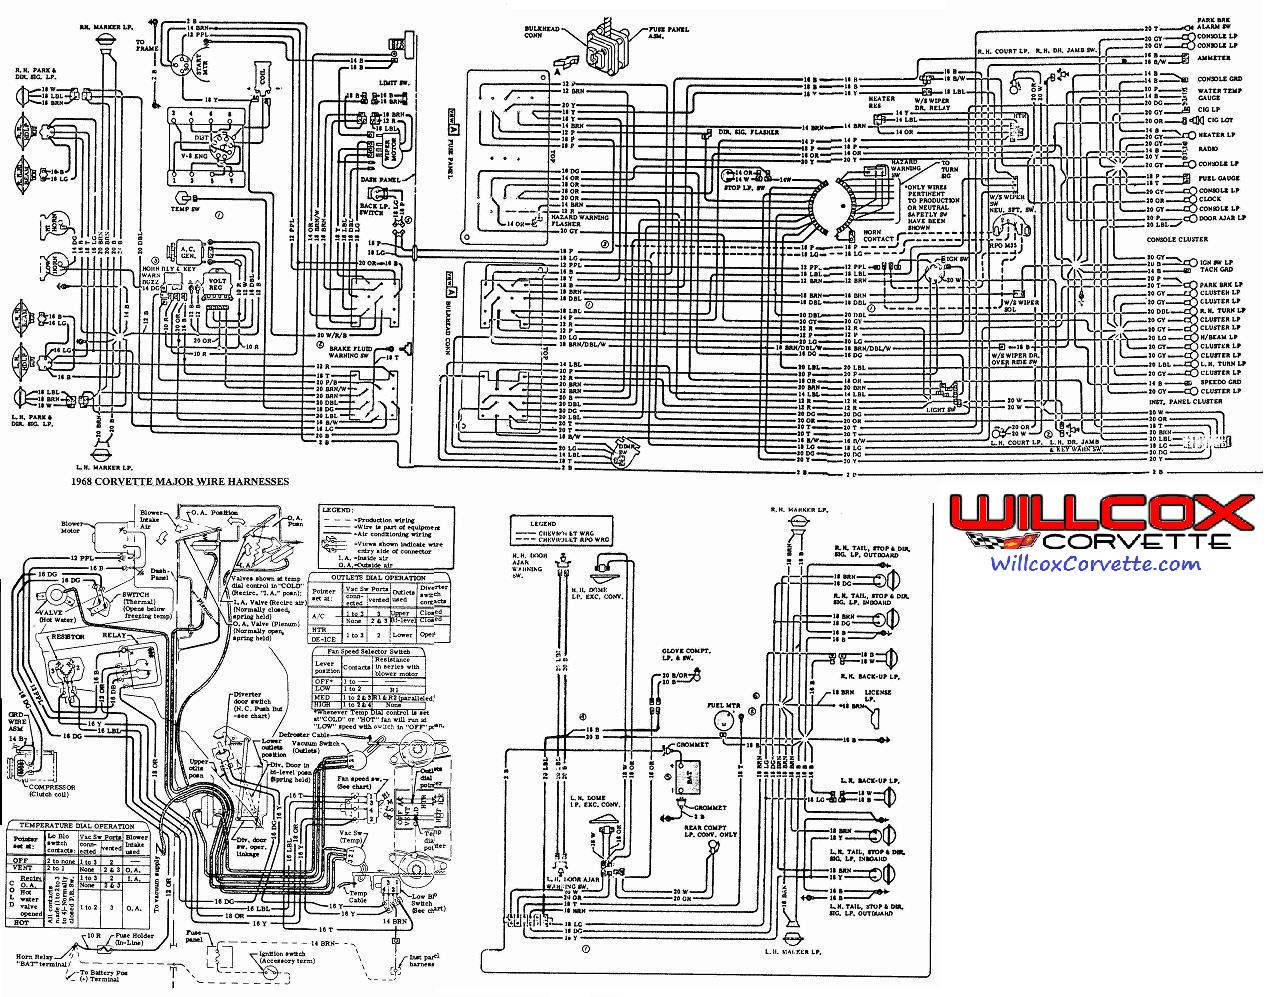 1964 Chevy Starter Wiring Diagram 1968 Corvette Wire Schematic 68 Corvette From The Aim